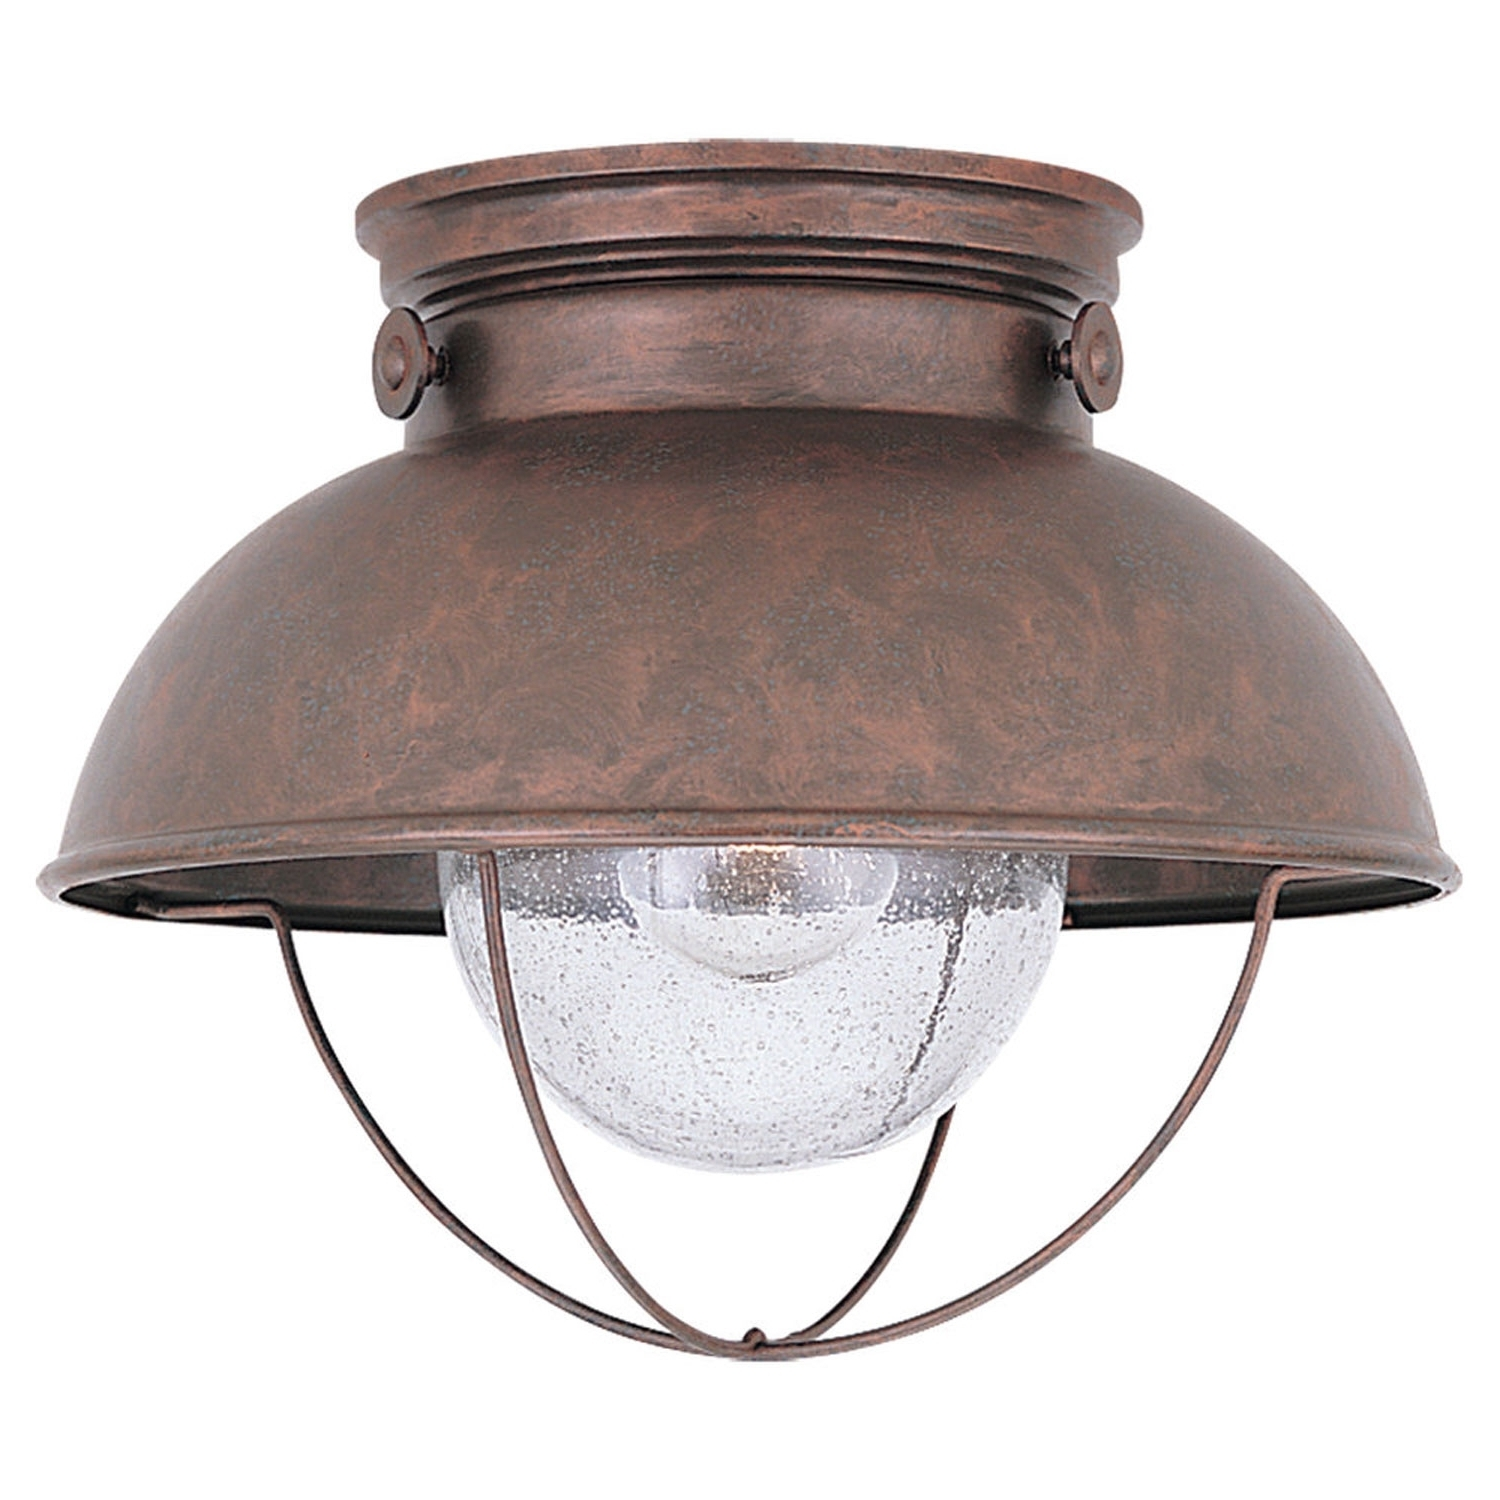 Round Black Finish Motion Sensor Outdoor Ceiling Light • Outdoor Pertaining To Famous Outdoor Ceiling Sensor Lights (View 12 of 20)